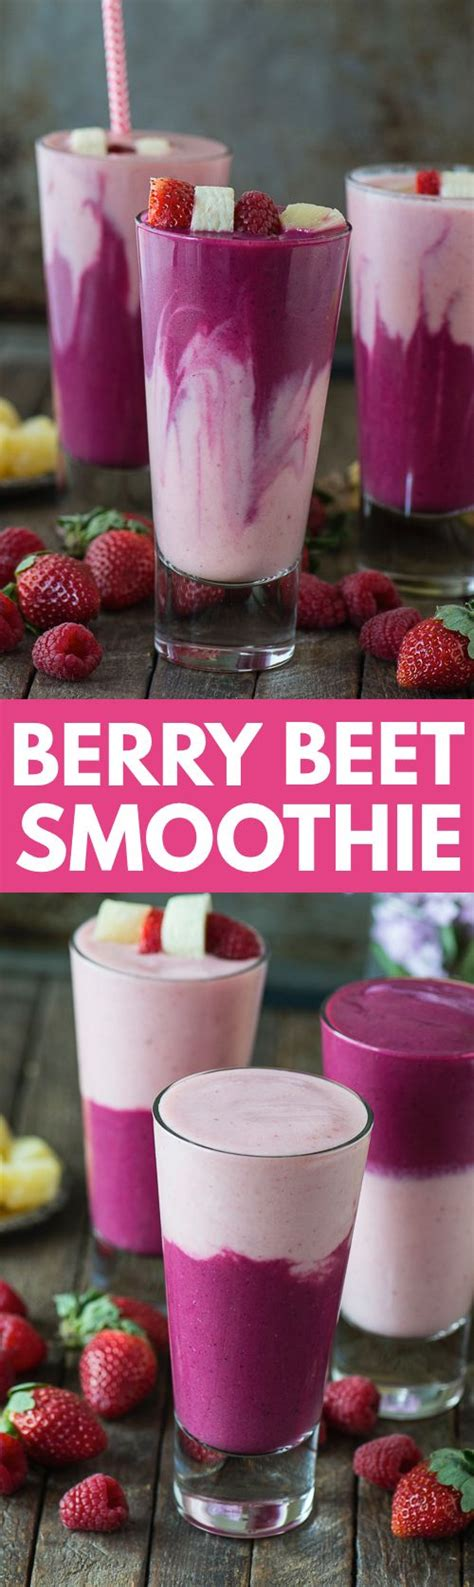 Berry Detox Juice Recipes by Berry Beet Smoothie Recipe Frozen Strawberries Yogurt